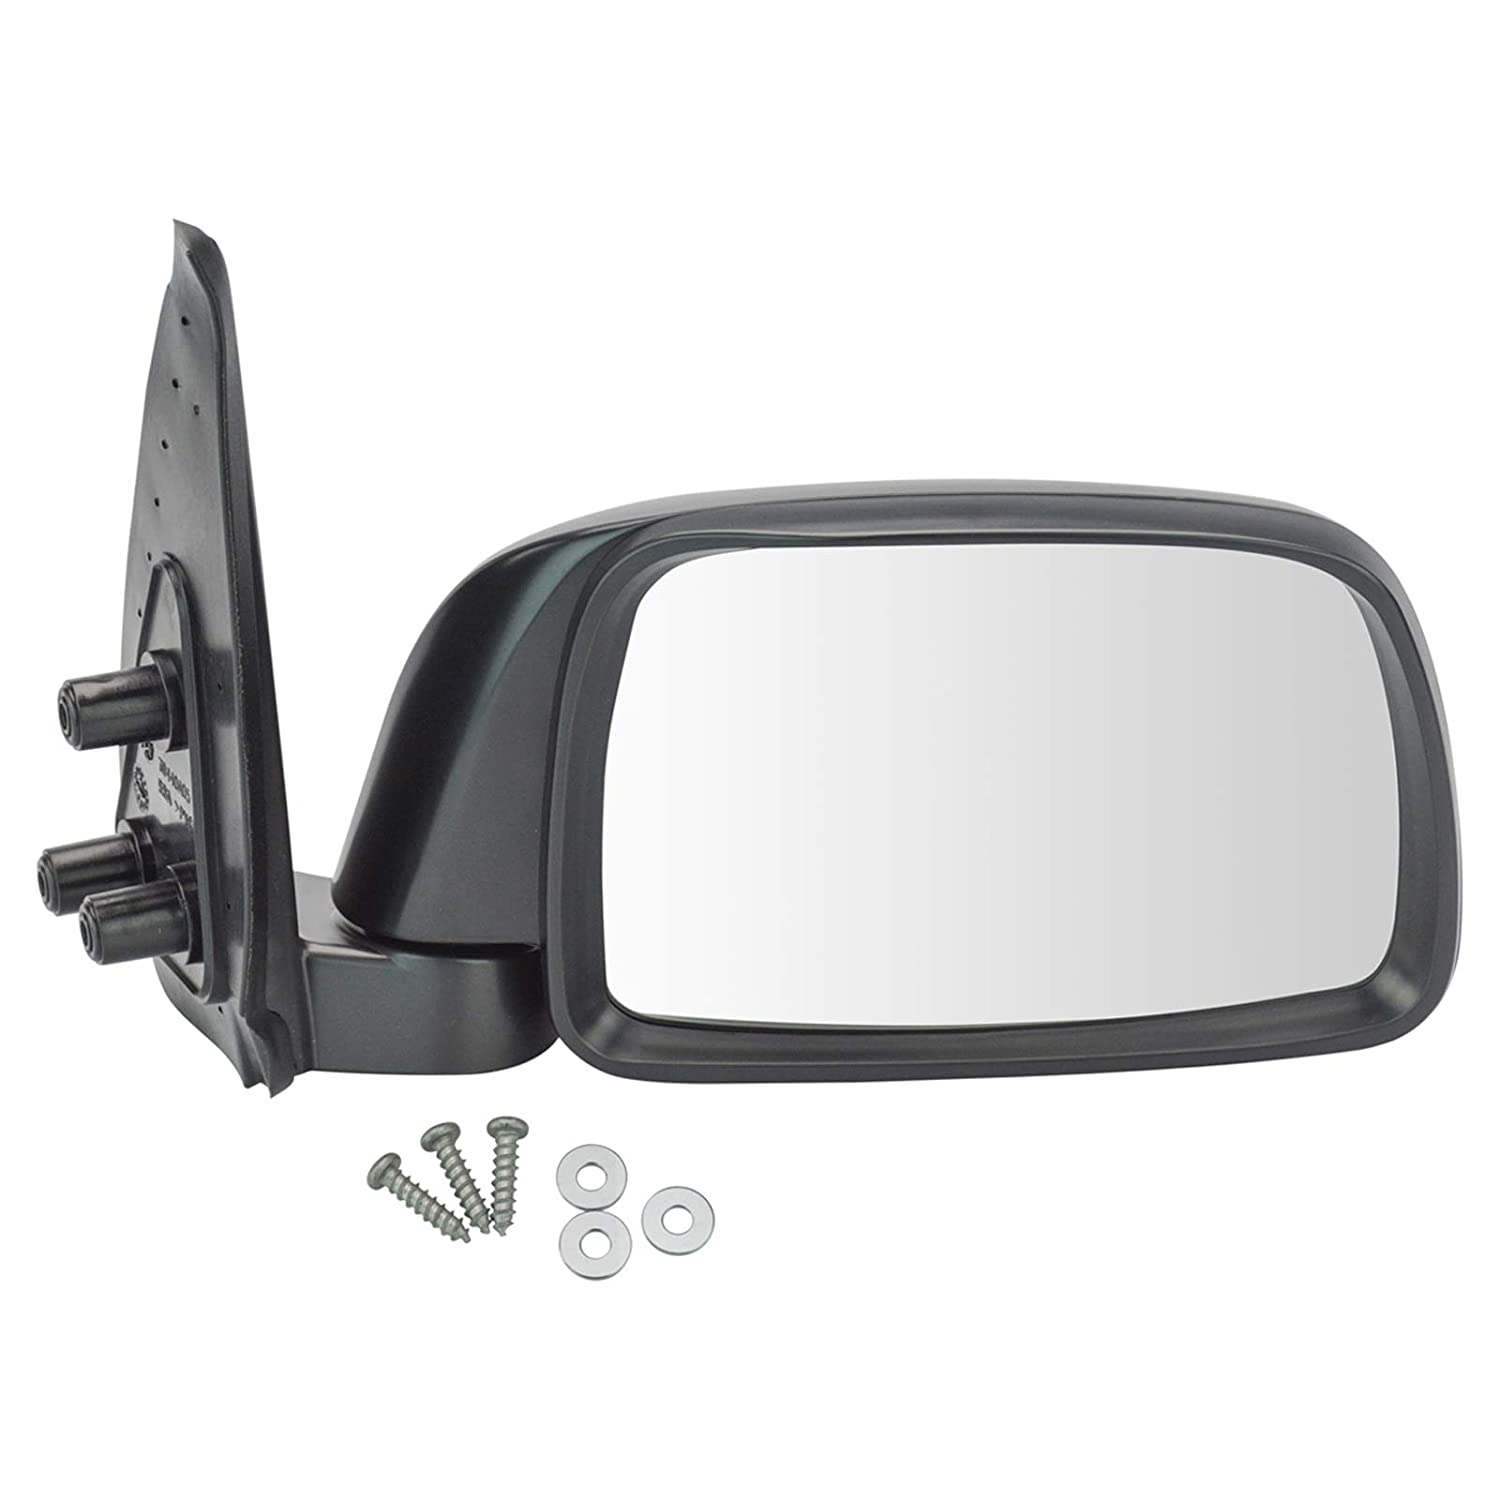 Folding Manual Side View Mirrors Pair Set for 95-99 Tacoma Pickup Truck